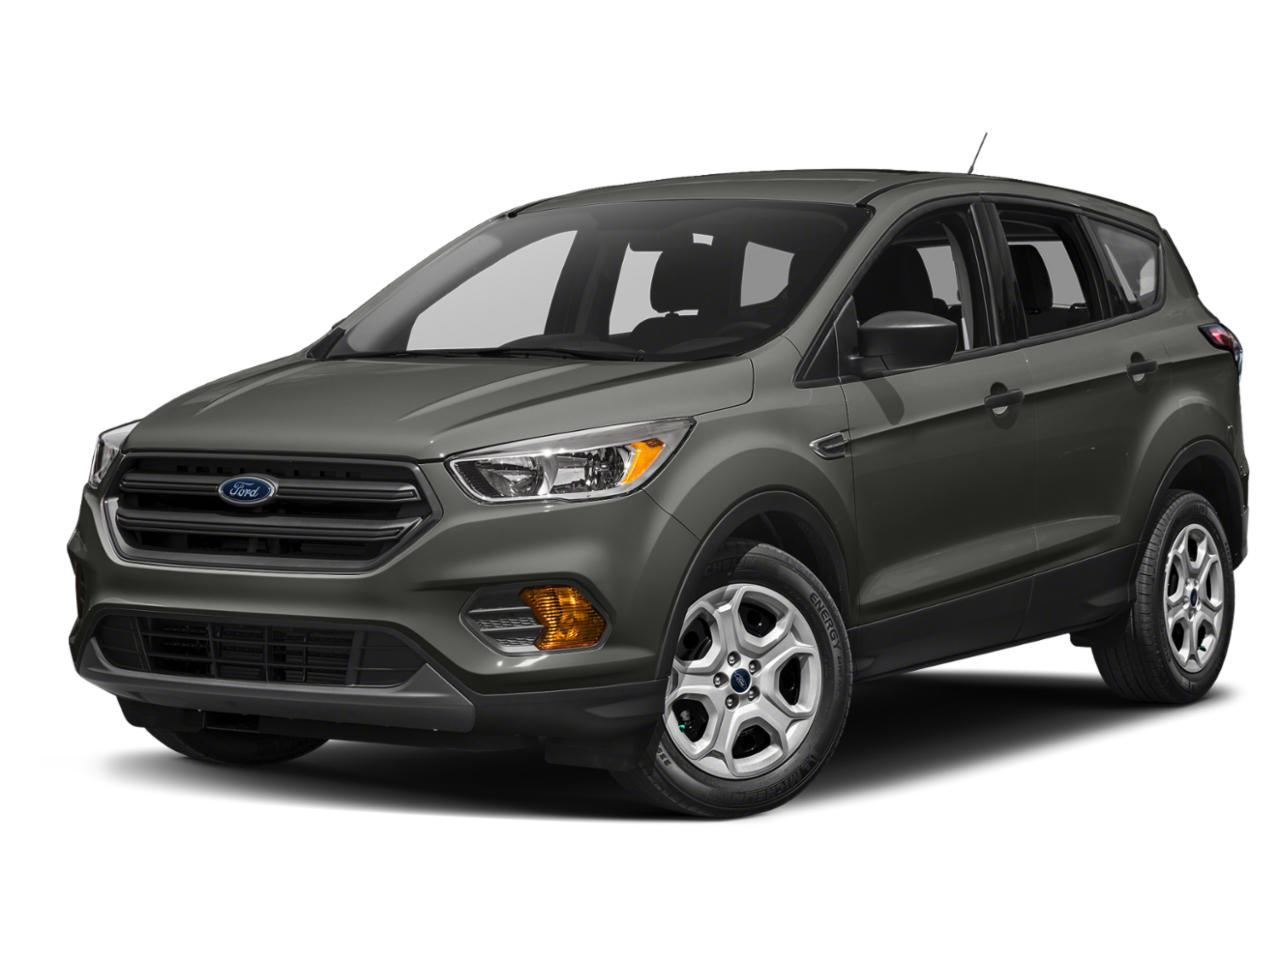 2019 Ford Escape Vehicle Photo in Elyria, OH 44035